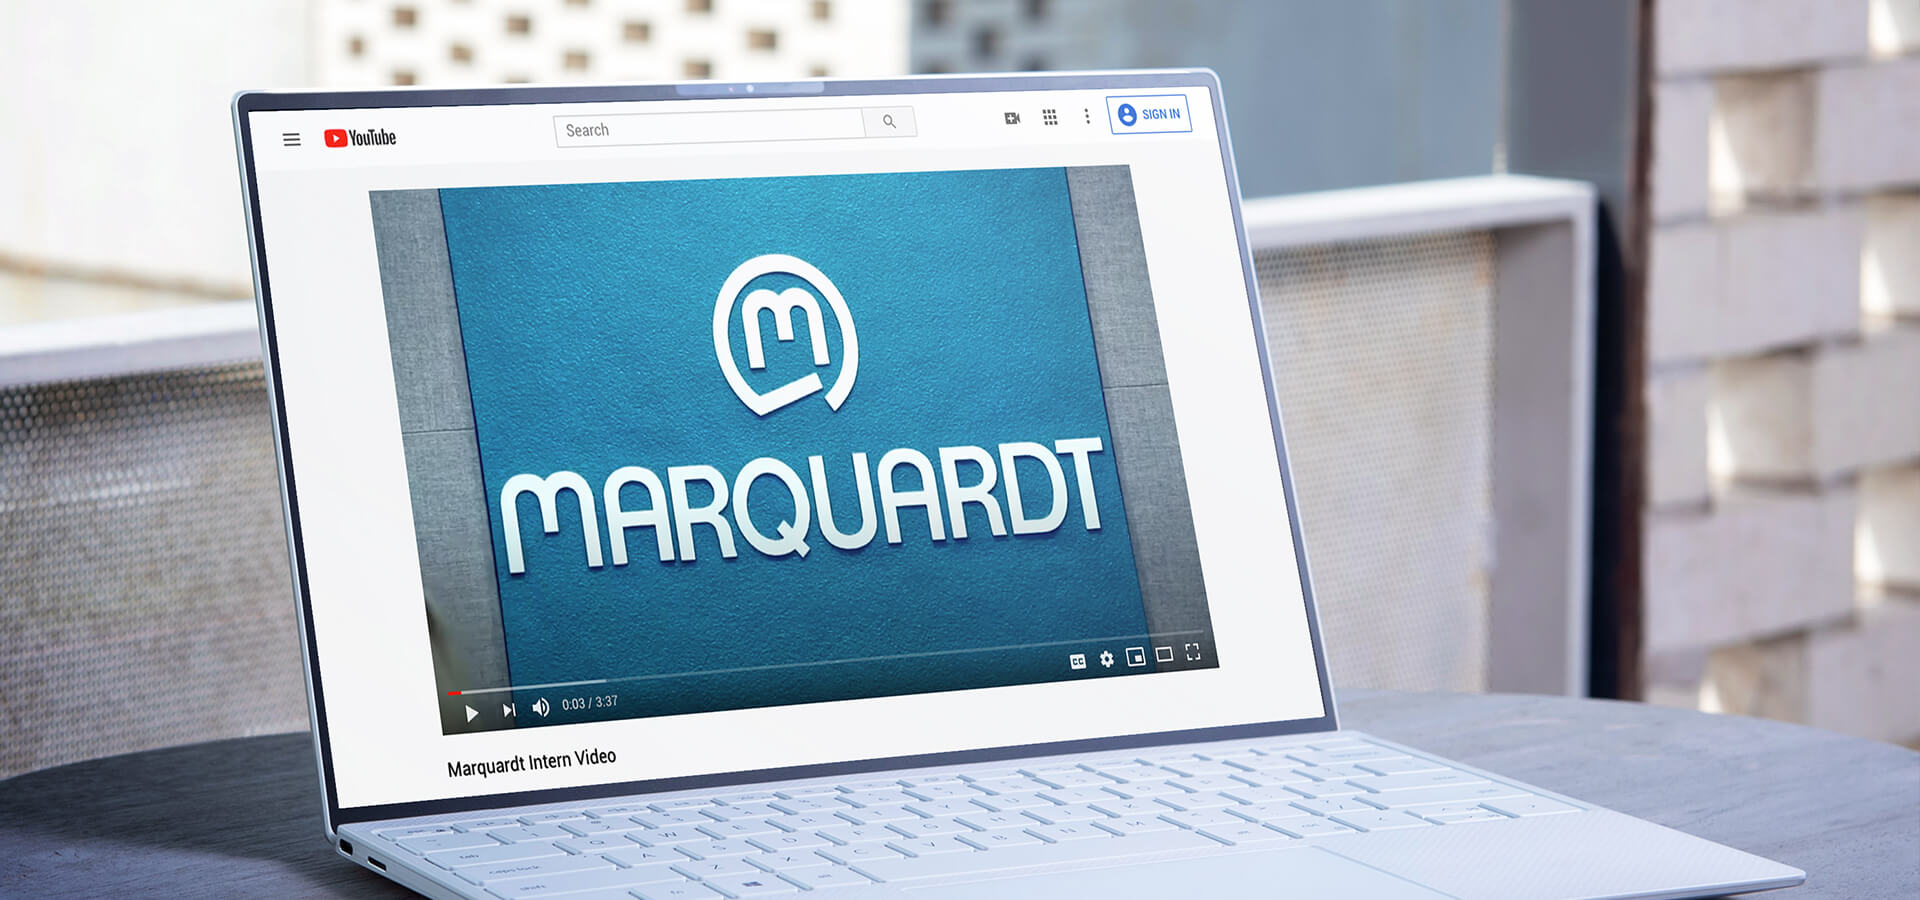 marquardt vieo being played on youtube on a laptop